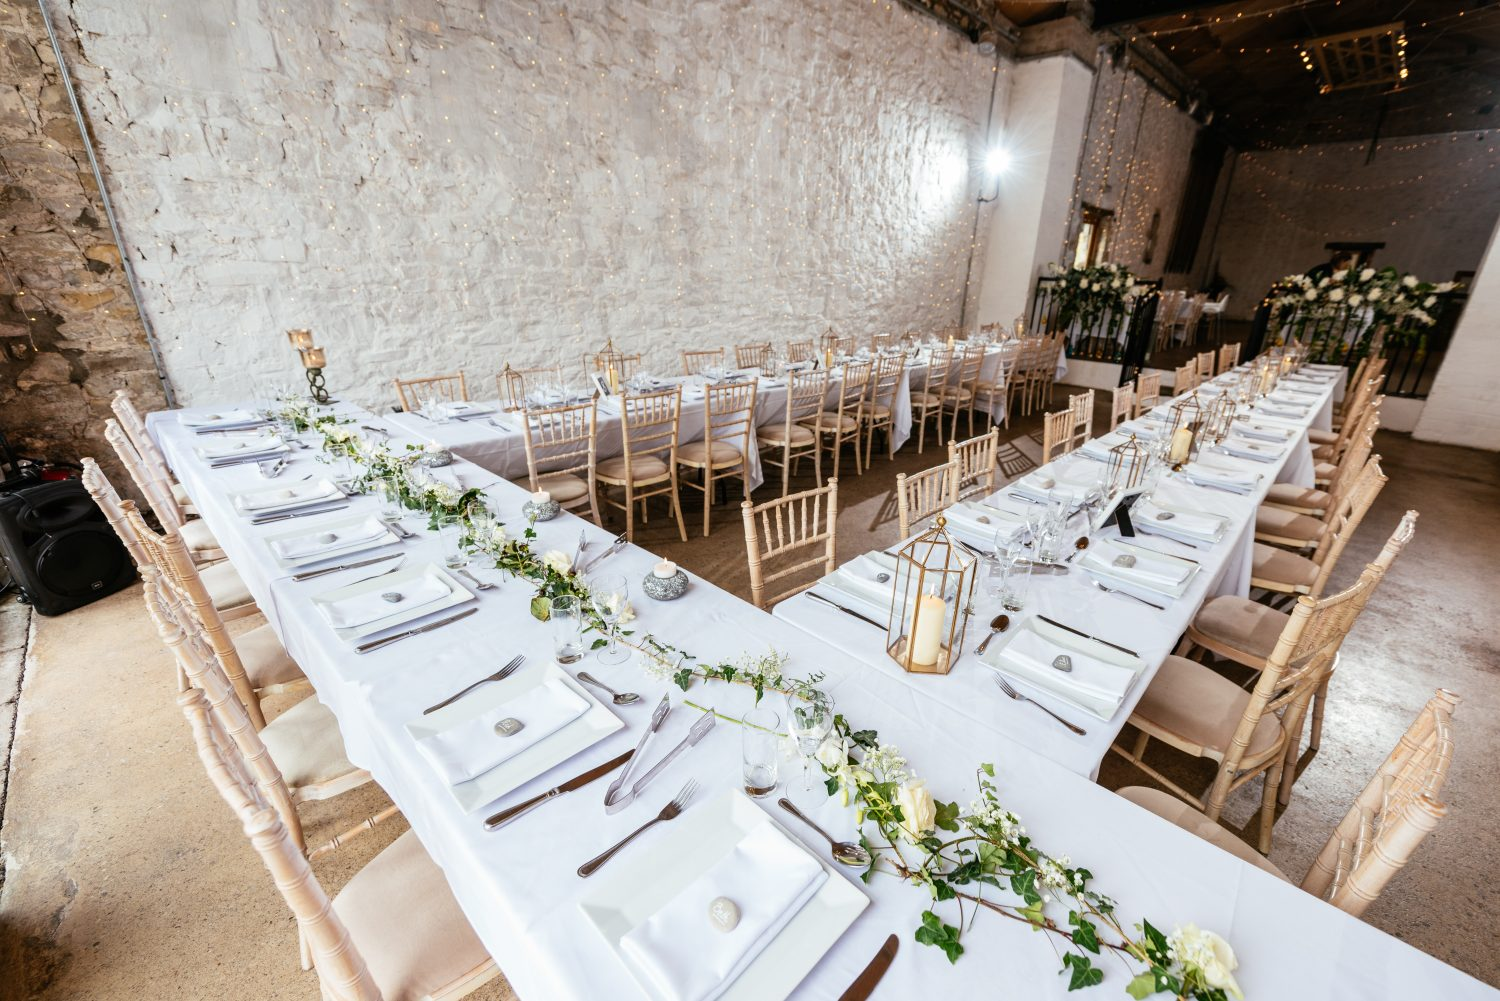 Trestle Table Set up in the Farmer's Barn by South Wales Wedding Photographers